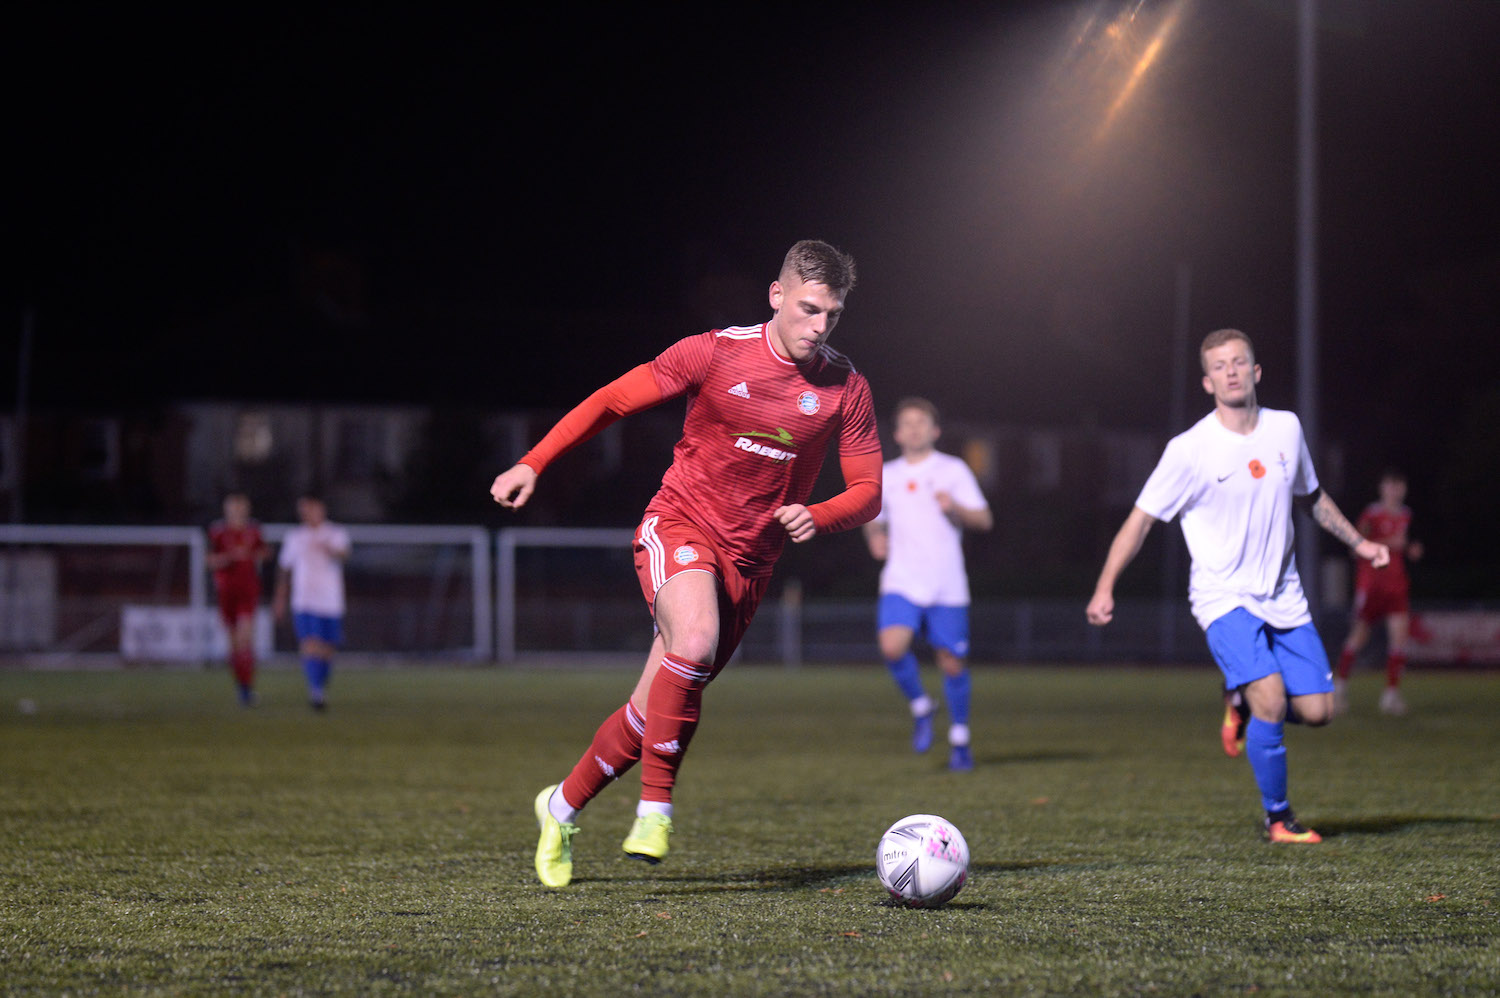 Read the full article - National League For Callum Kealy